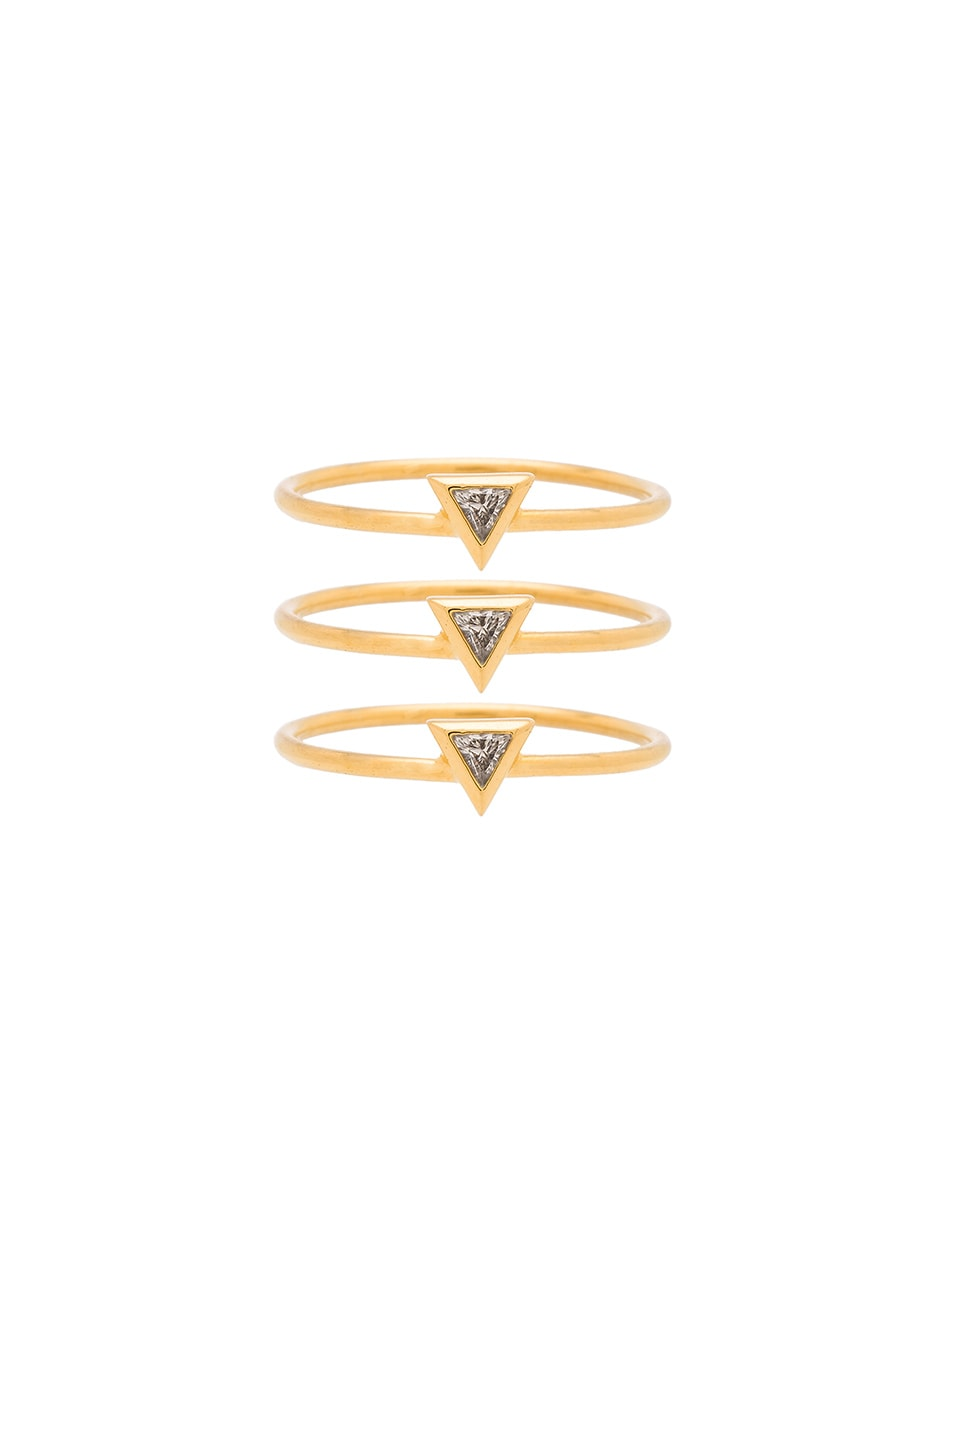 gorjana Vivienne Ring Set in Gold